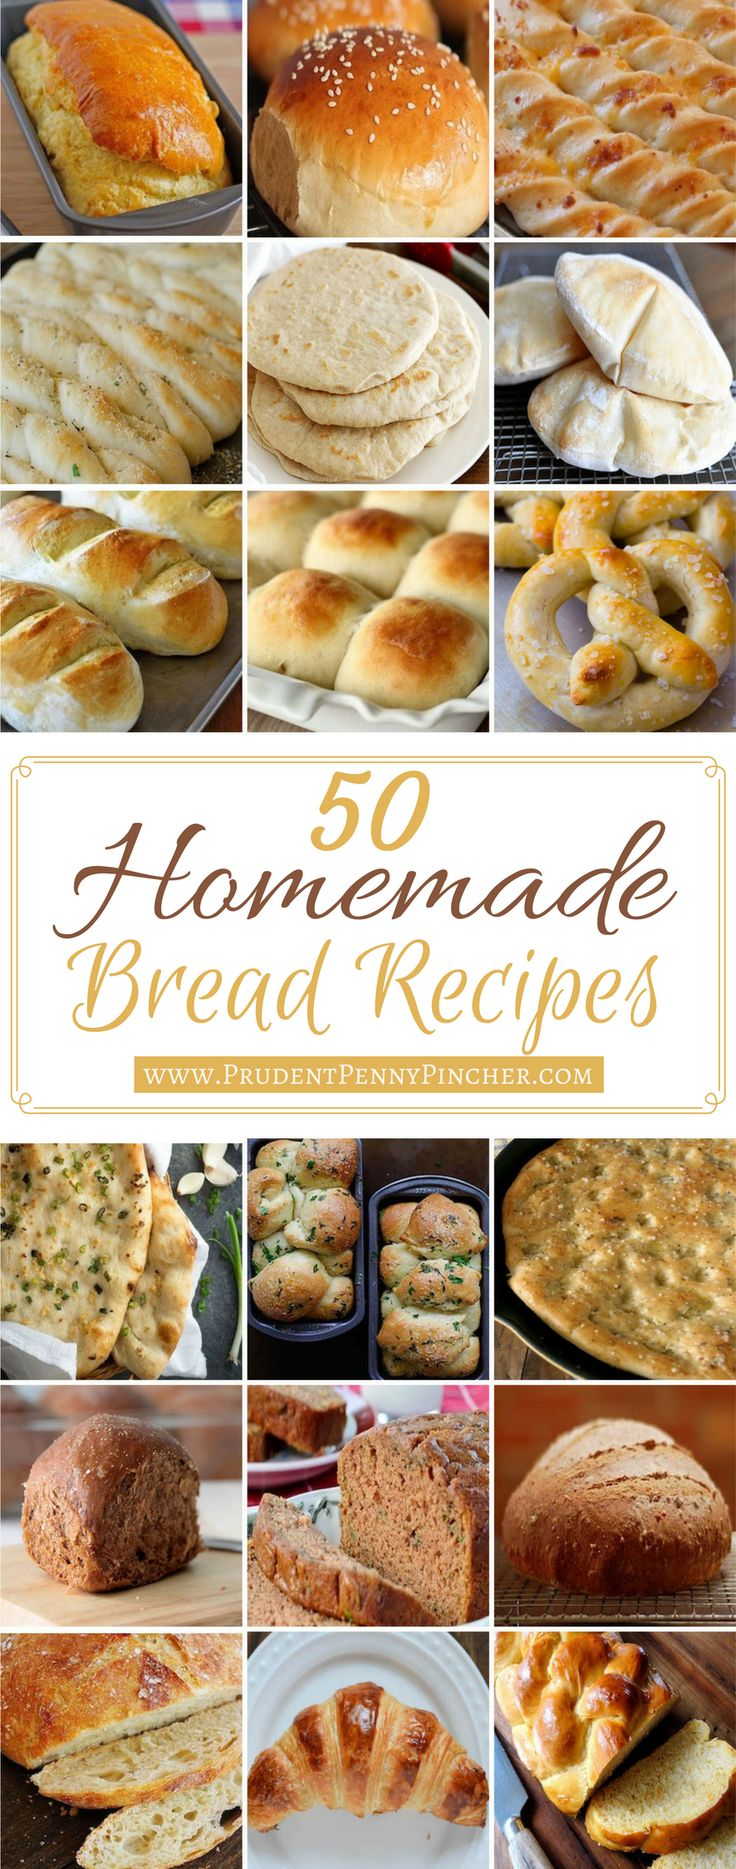 50 Homemade Bread Recipes